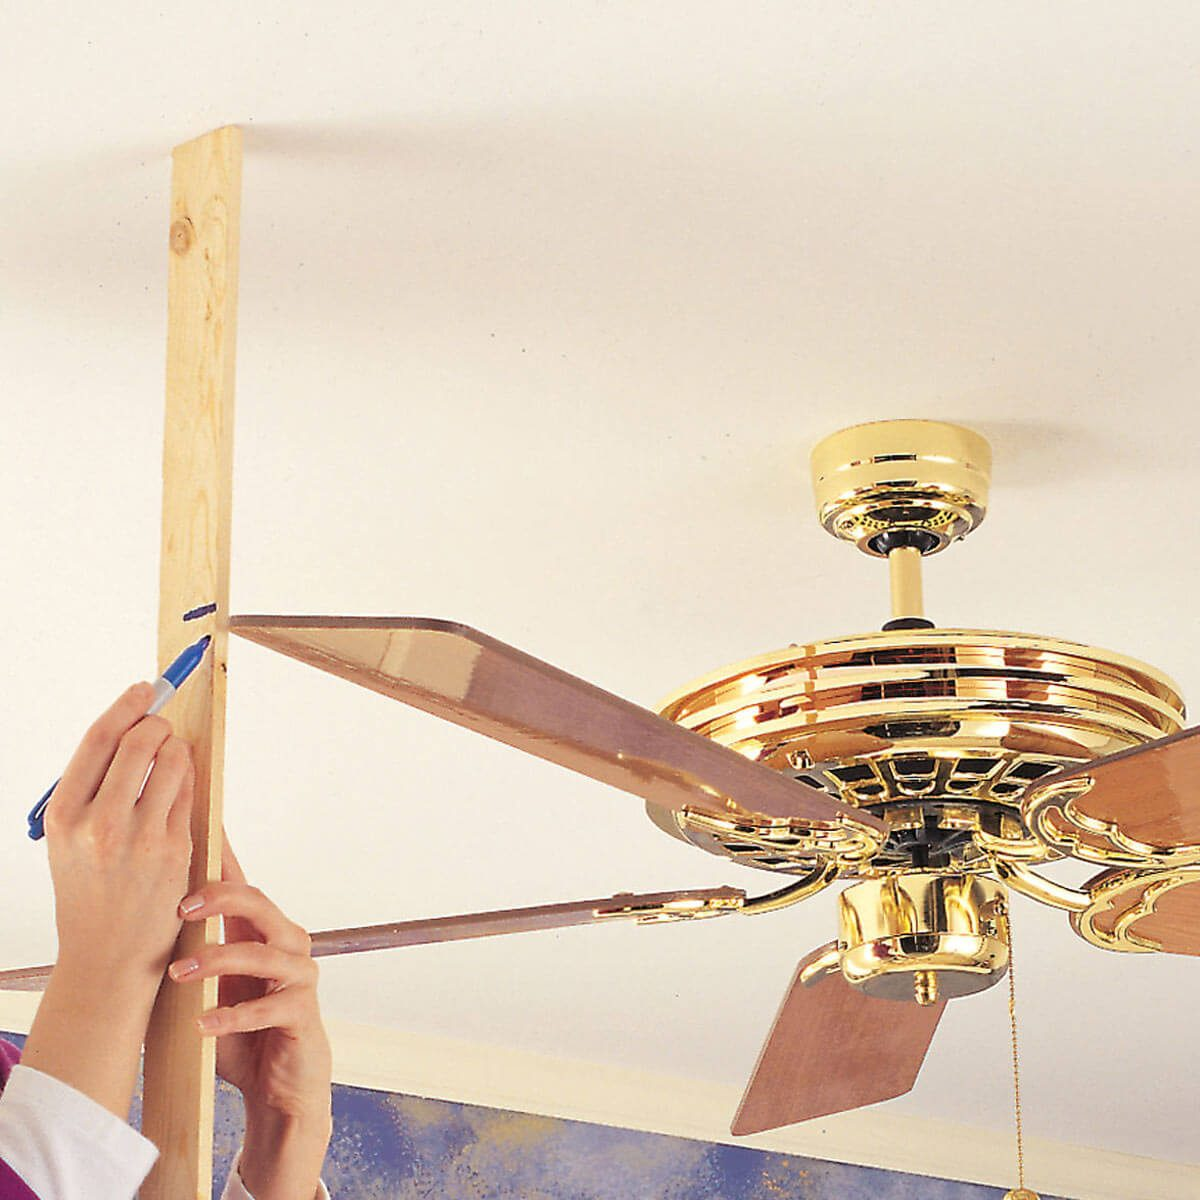 Hang a Ceiling Fan